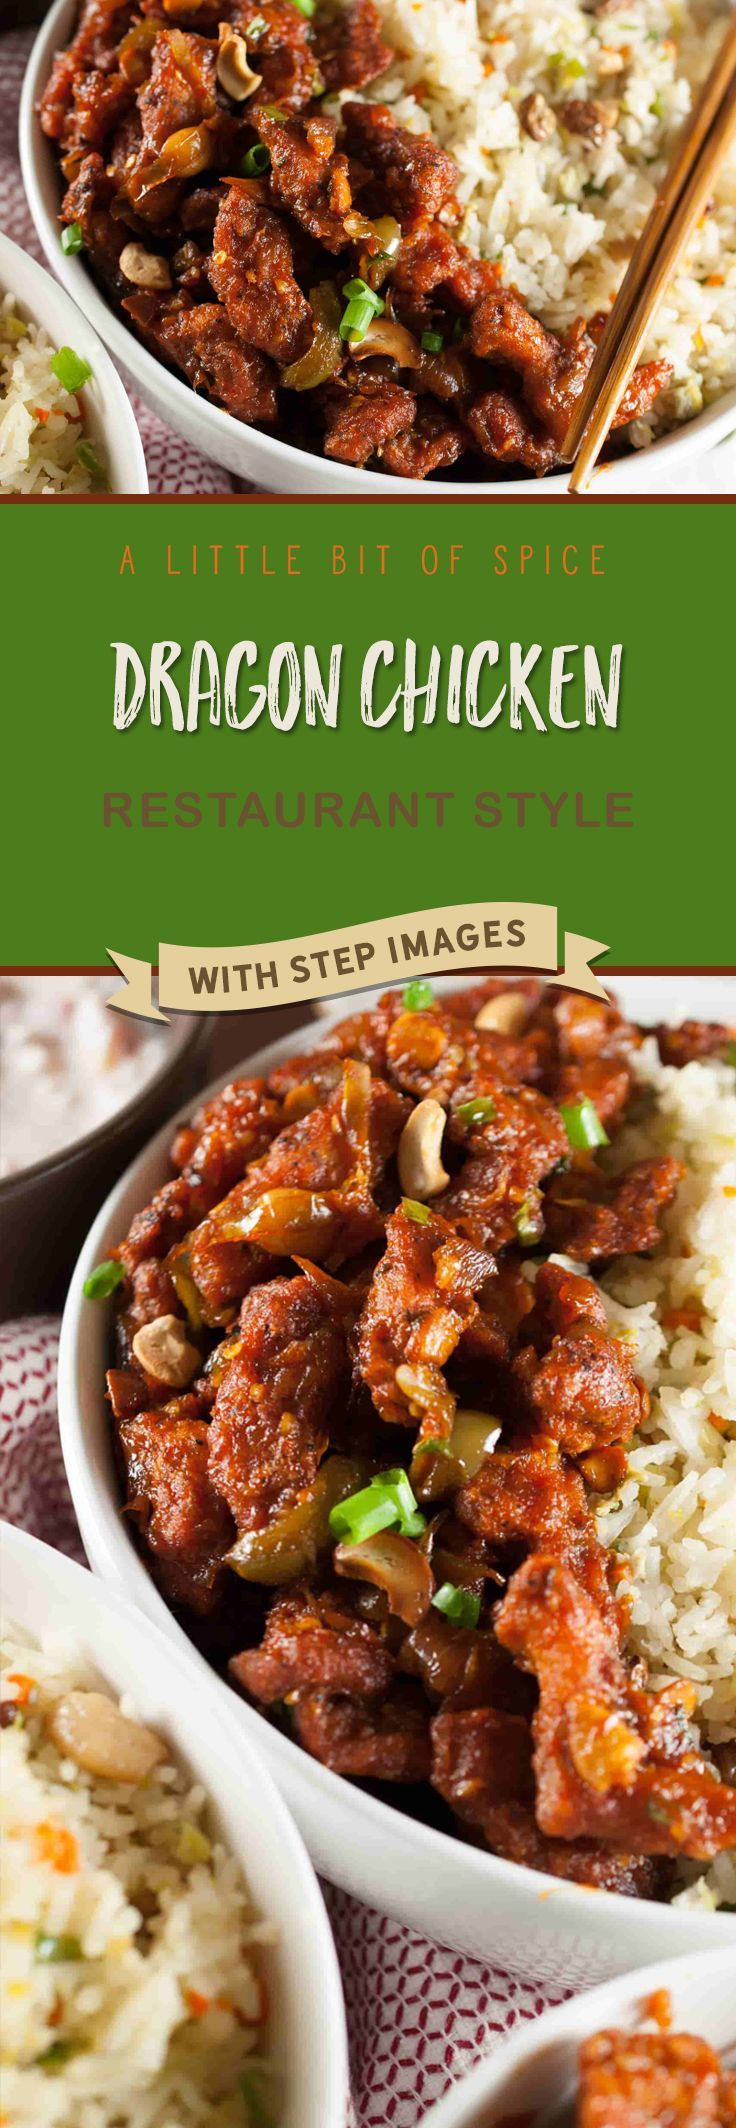 Chicken strips marinated, fried and sauteed in a spicy and tangy sauce. Quick and delicious Indo Chinese Dragon chicken recipe.